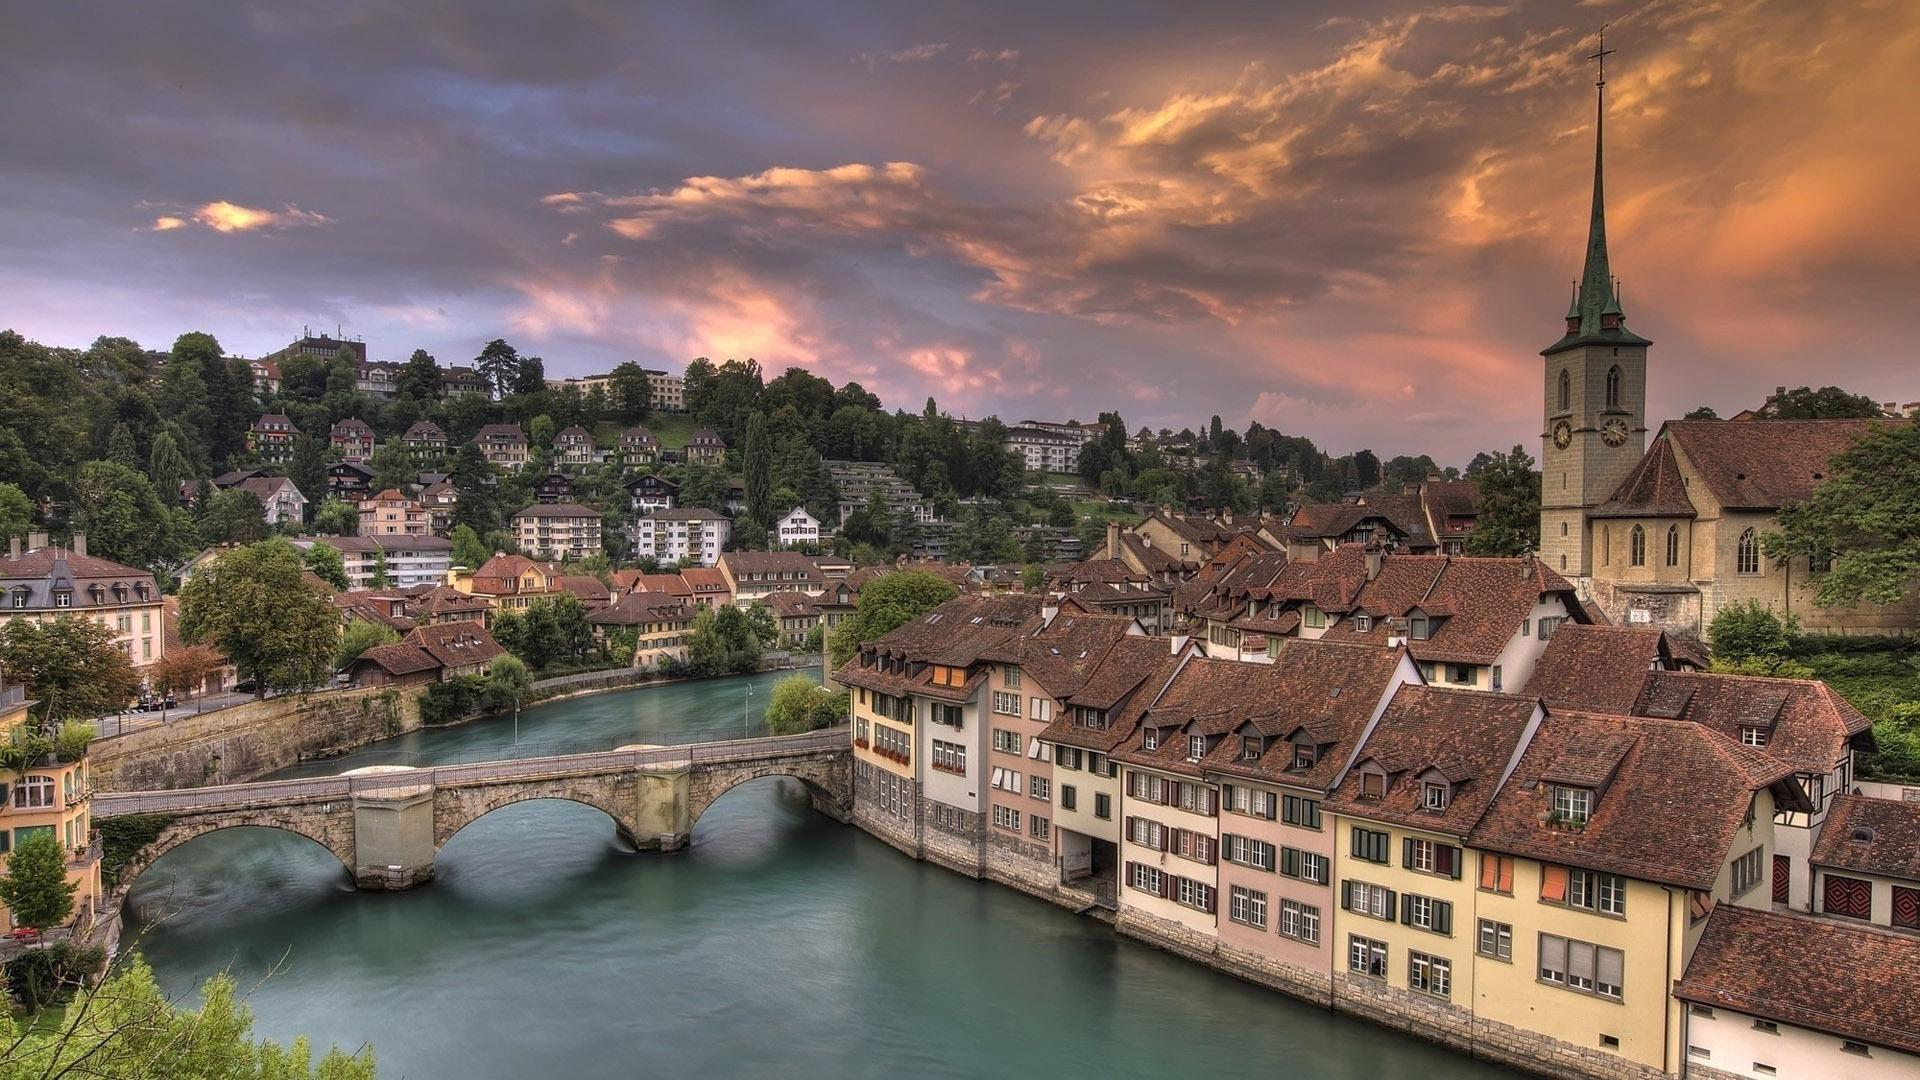 5 romantic places to visit in Switzerland this Valentine's Day